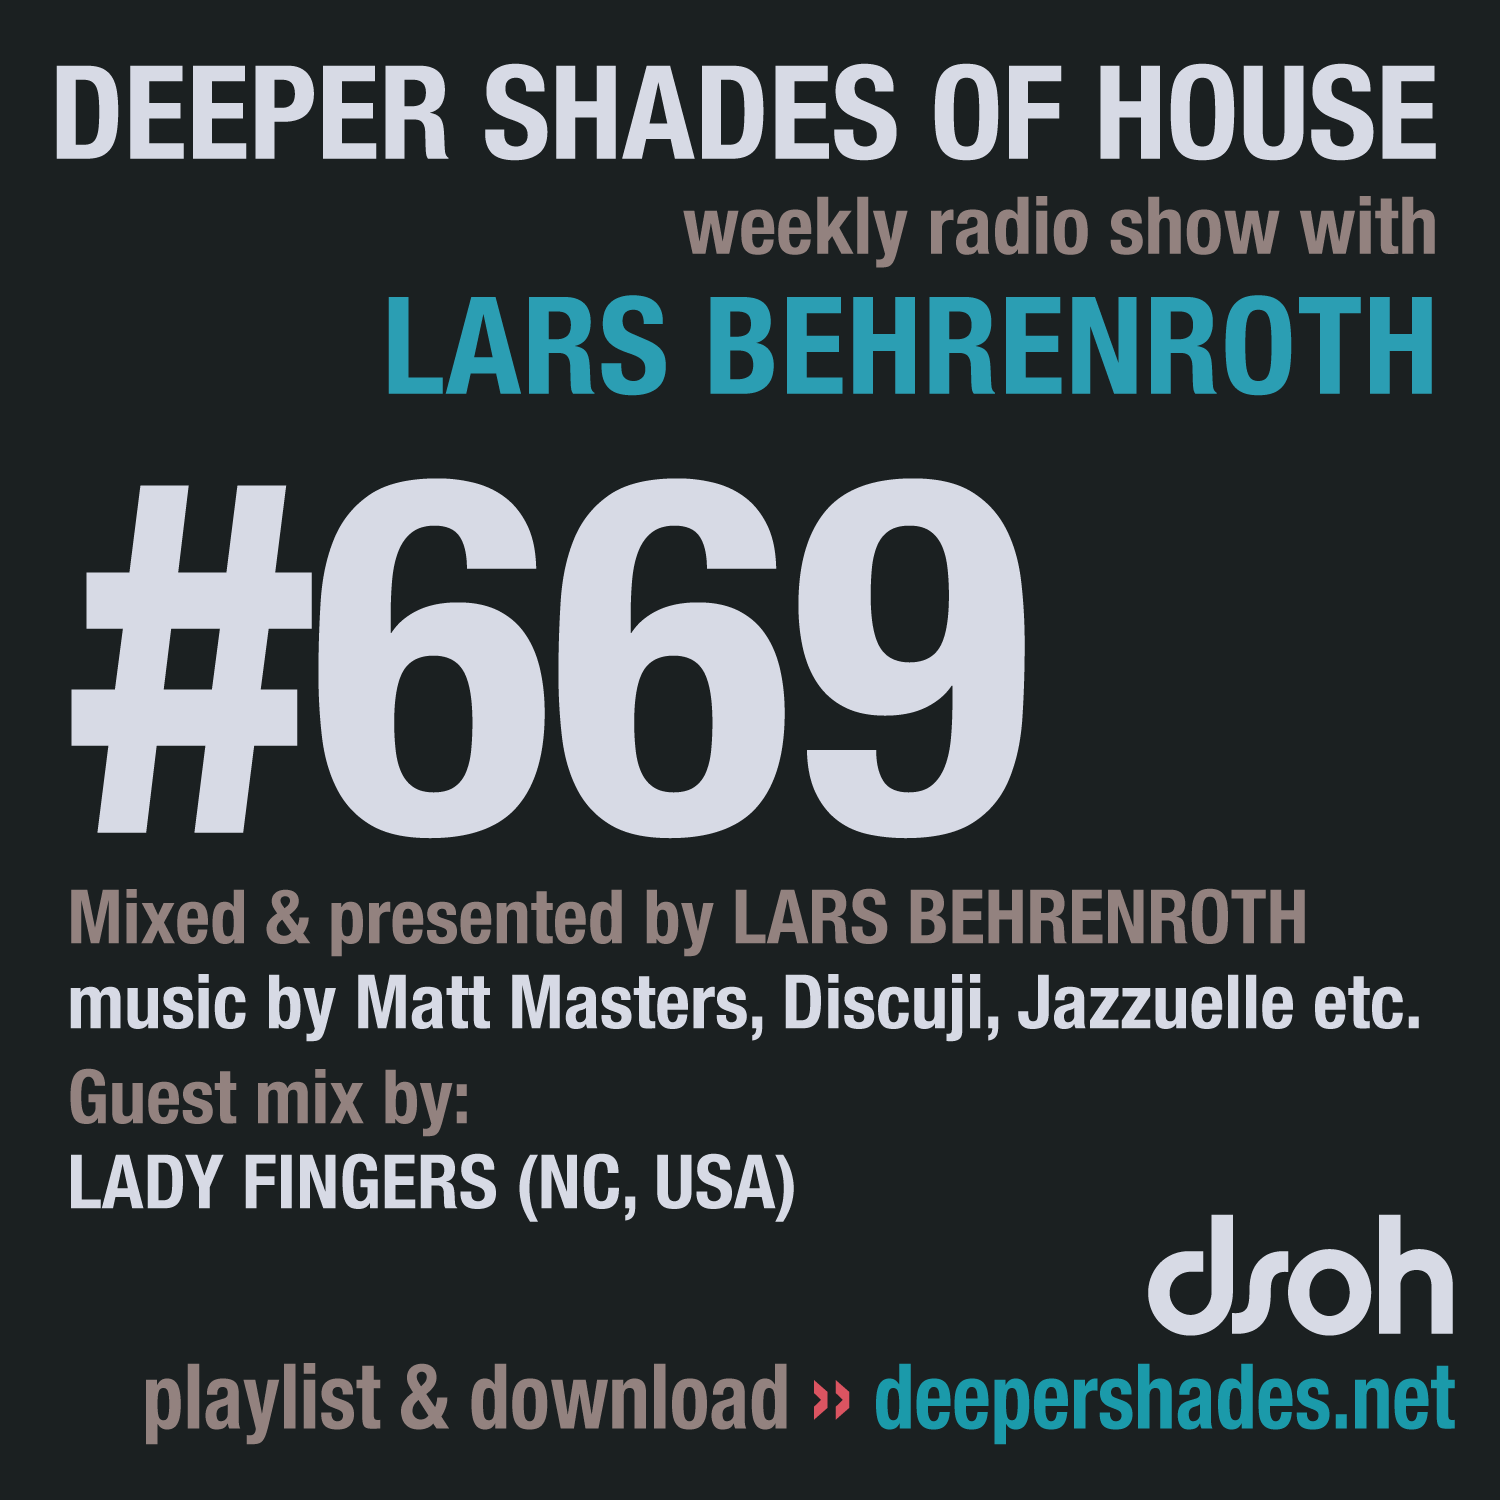 Deeper Shades Of House 669